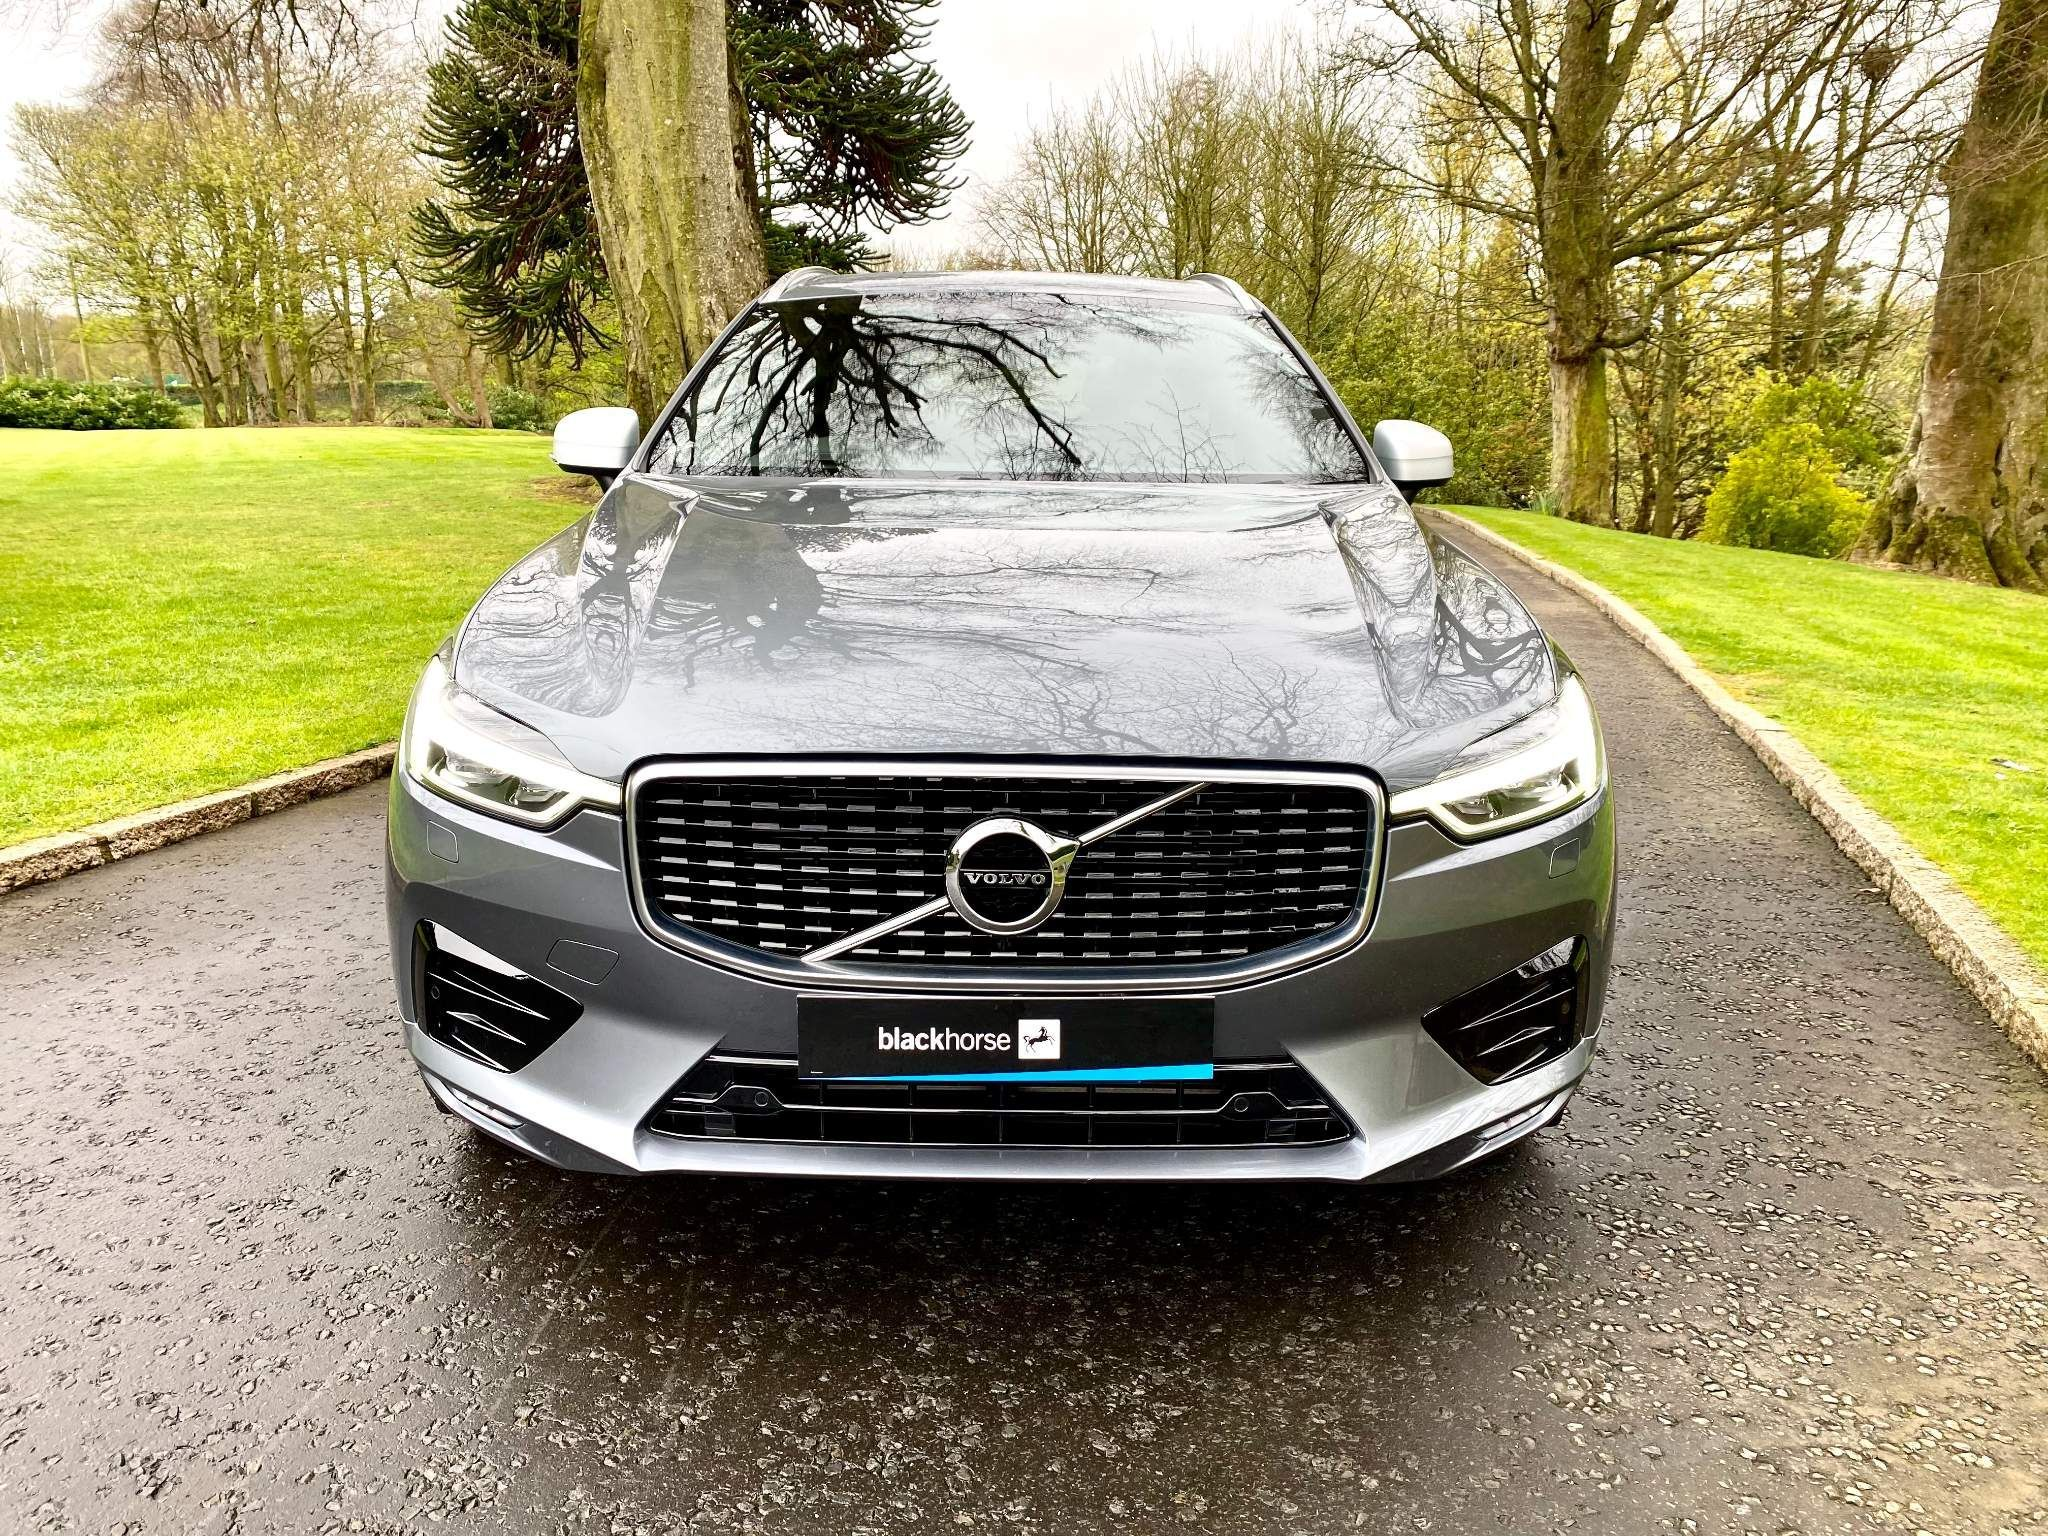 2019 Volvo XC60 2.0 D4 R-Design Pro Auto AWD (s/s) 5dr Diesel Automatic – Moyway Motors Dungannon full